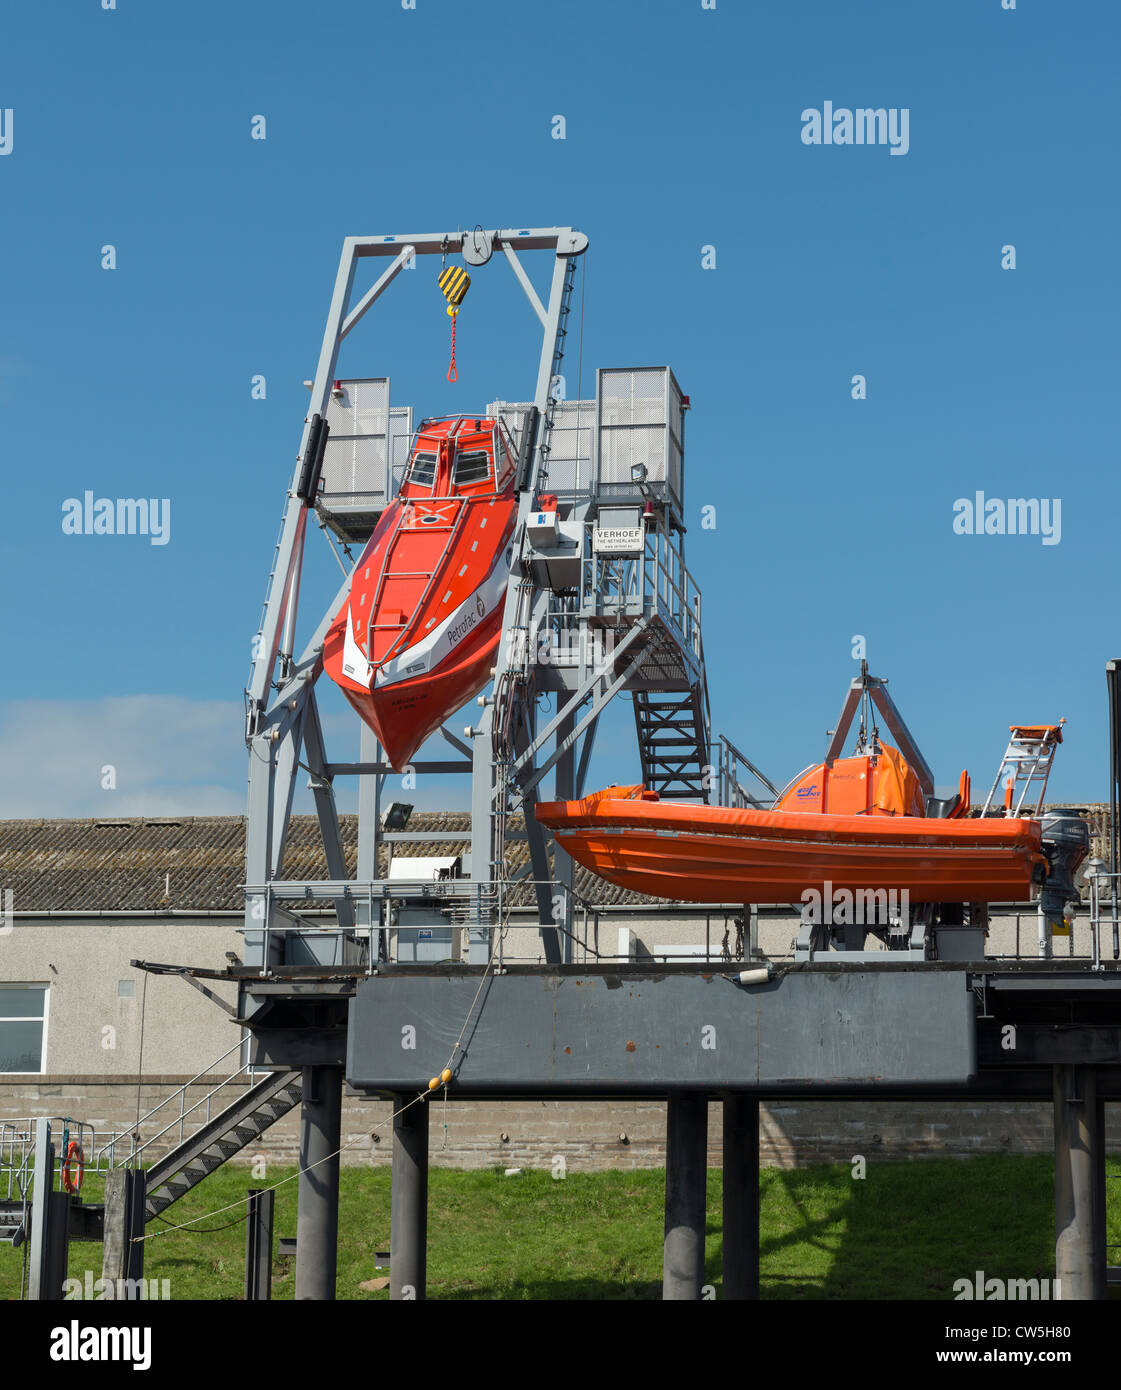 Verhoef Freefall Lifeboat on angled launch platform - Stock Image